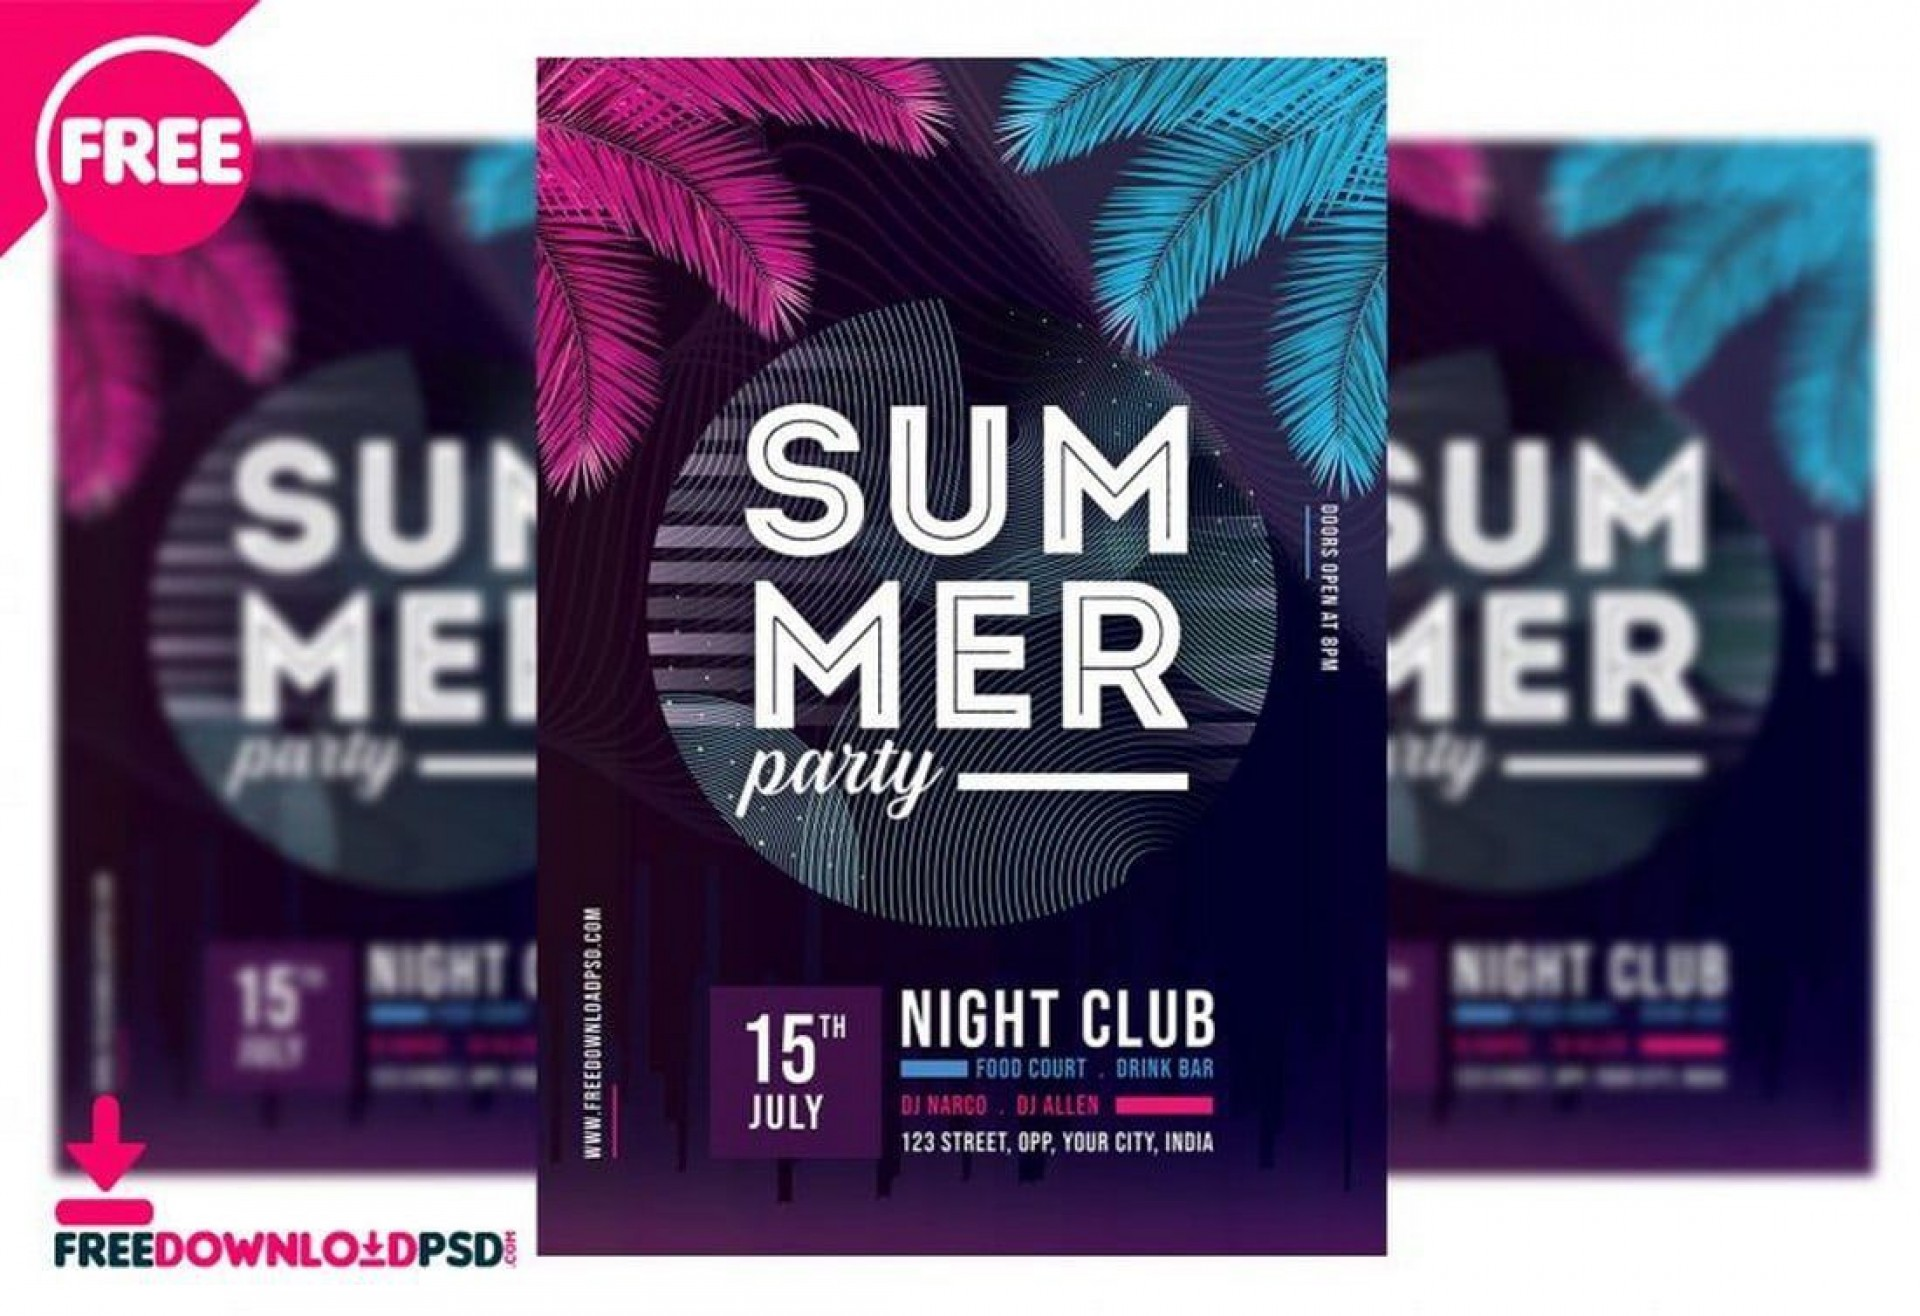 009 Marvelou Club Party Flyer Template Free Concept 1920